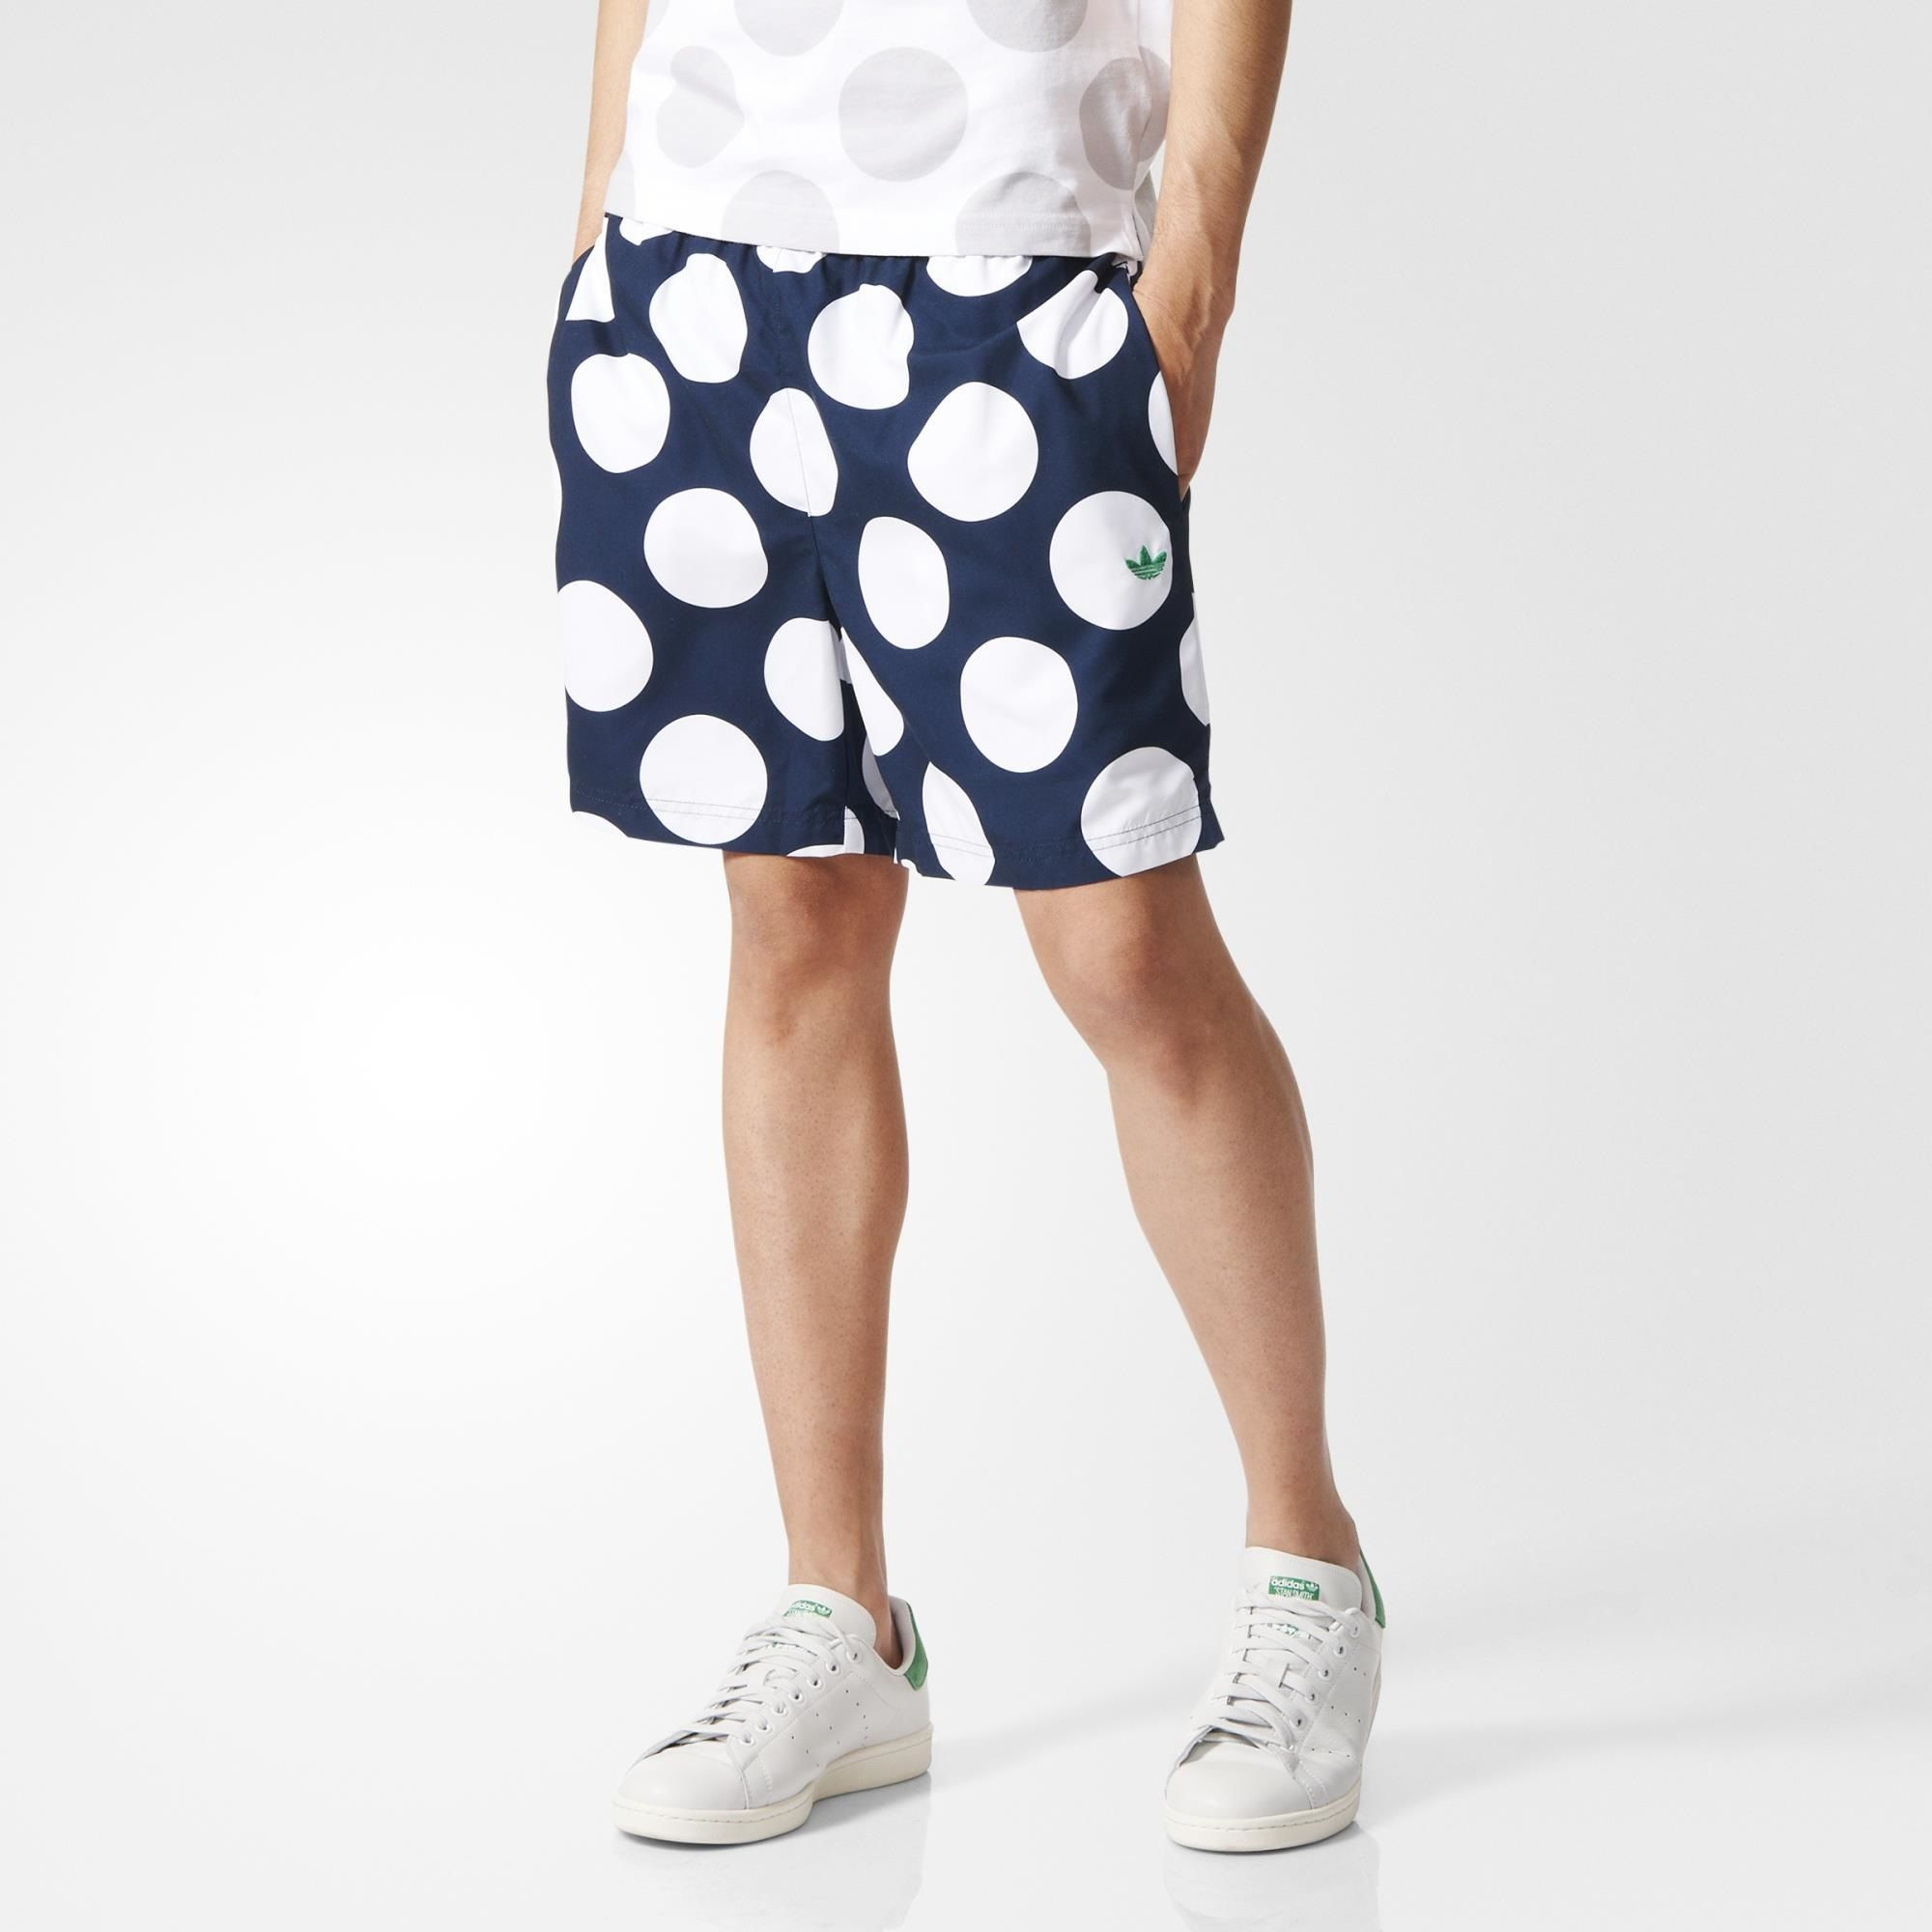 adidas stan smith with shorts